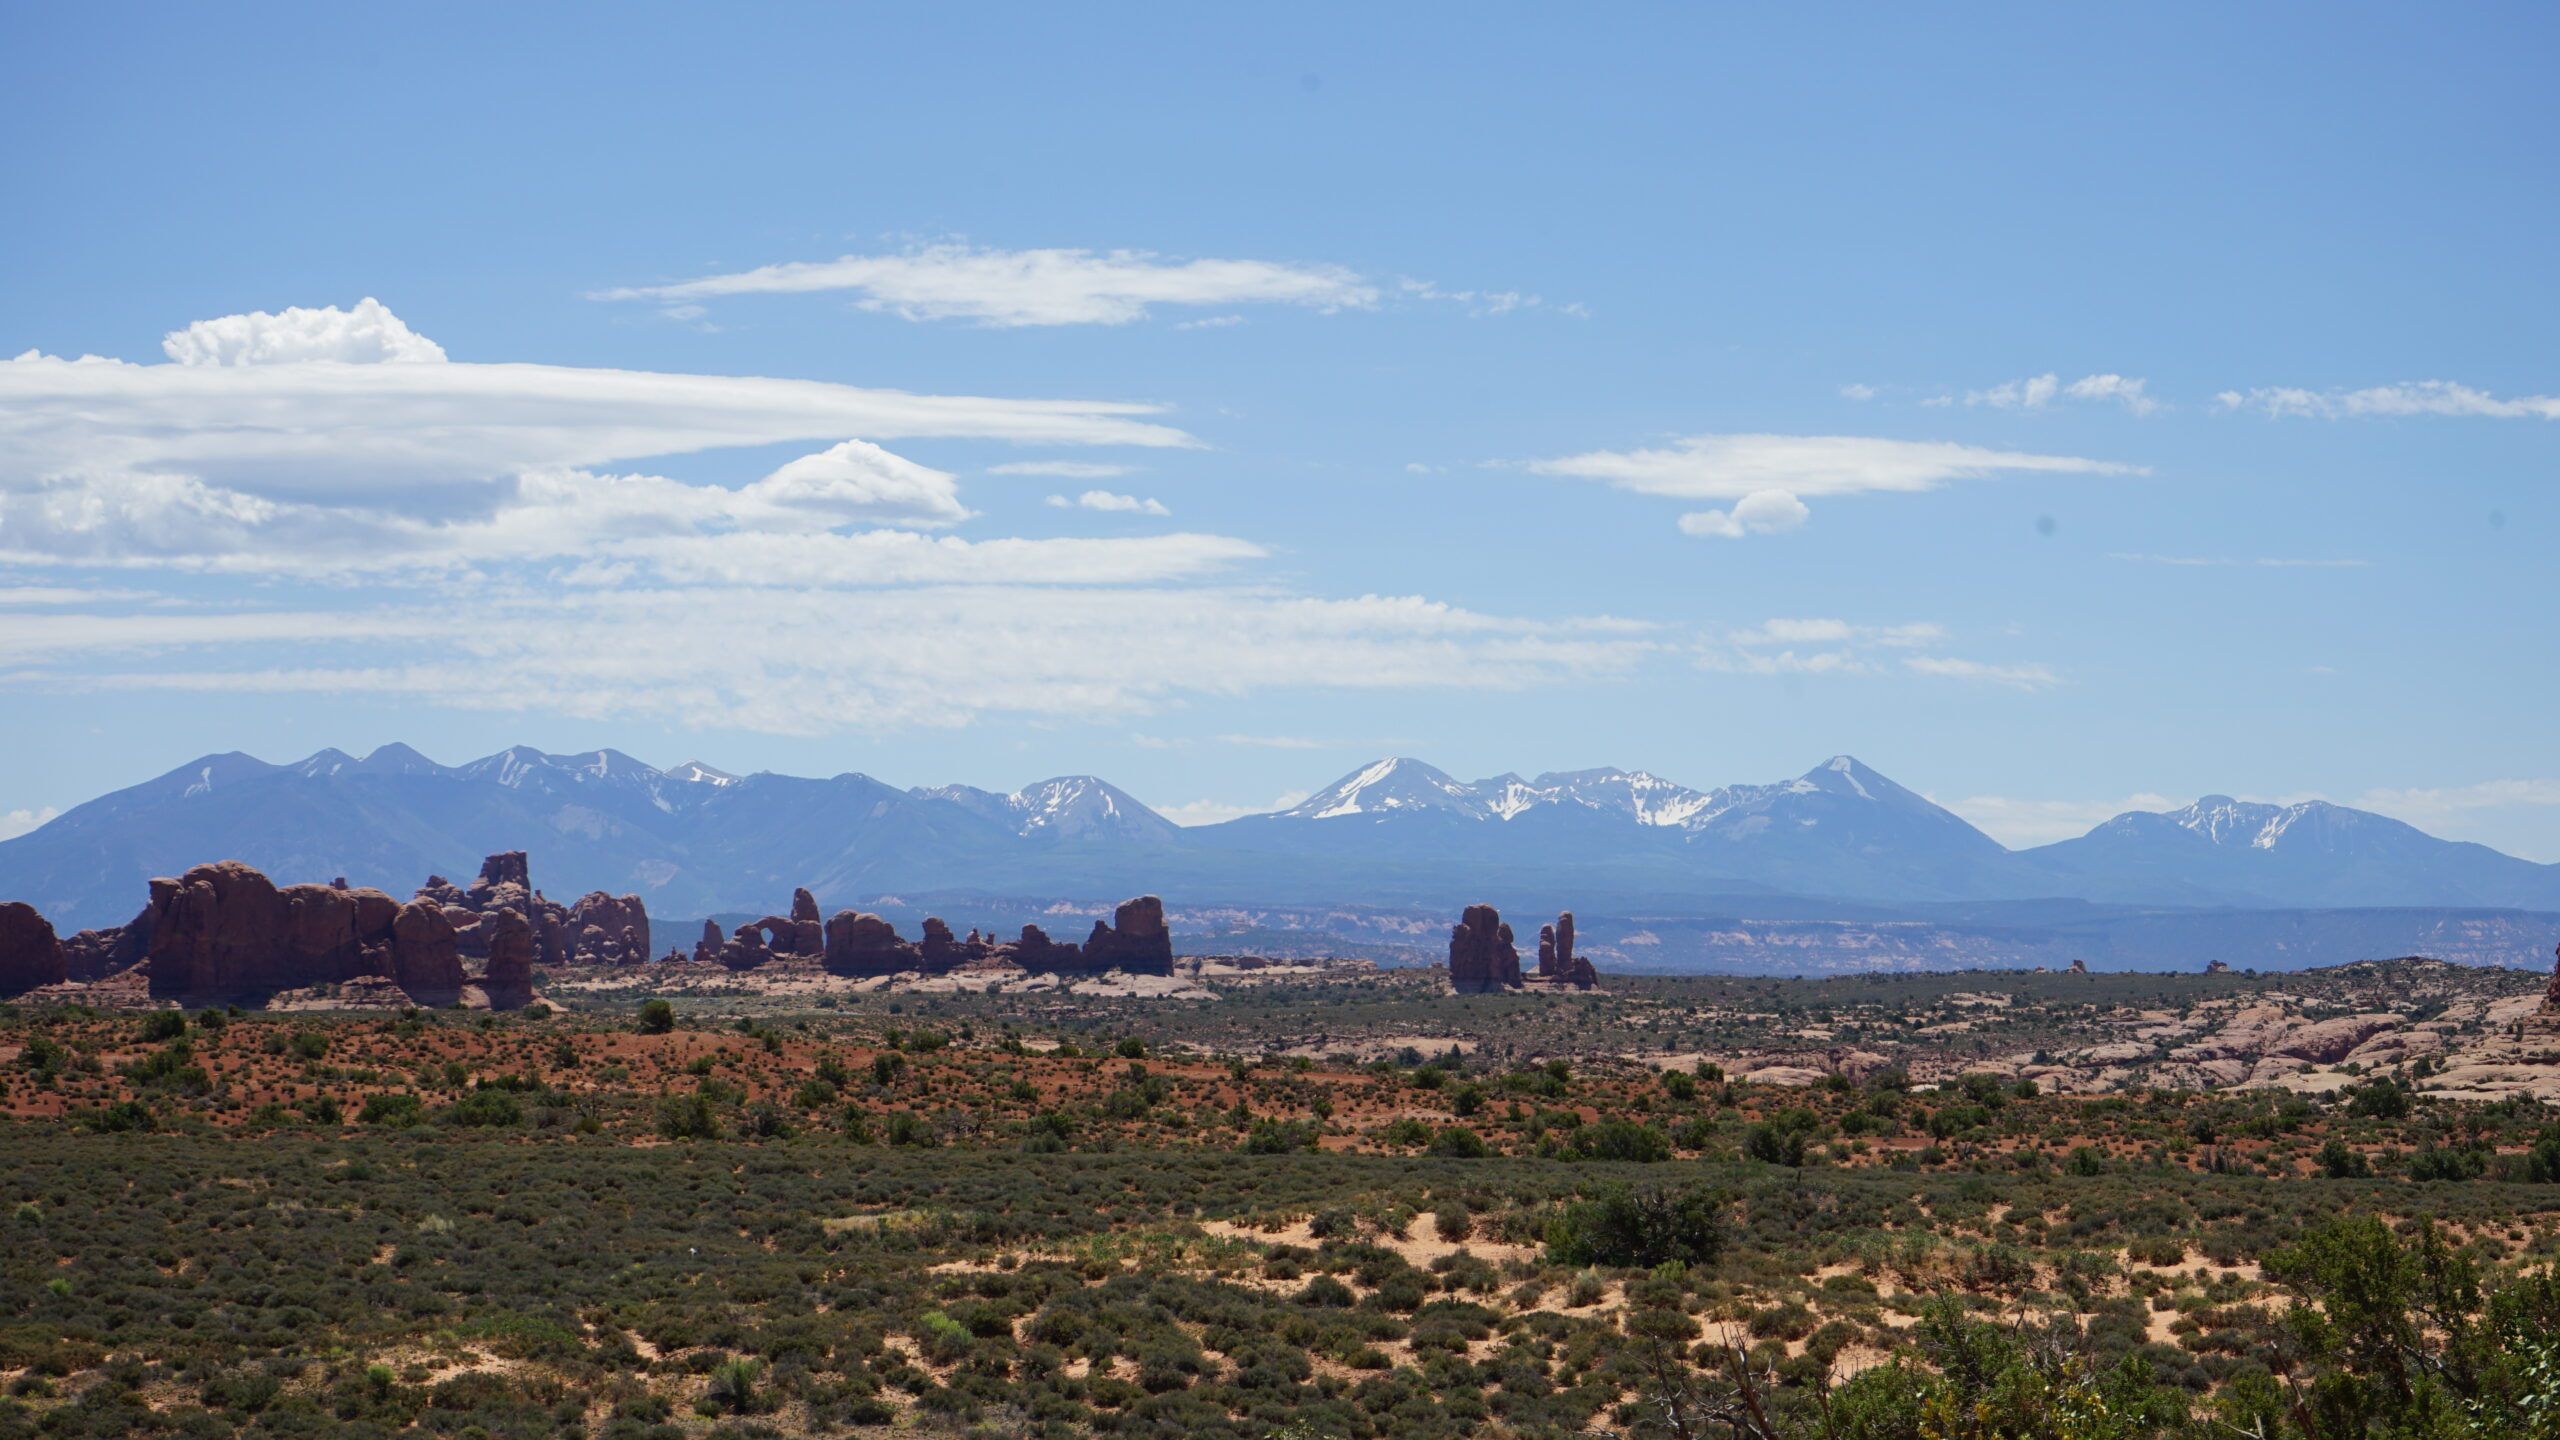 Hike the Devils Garden Trail in Arches National Park This Summer